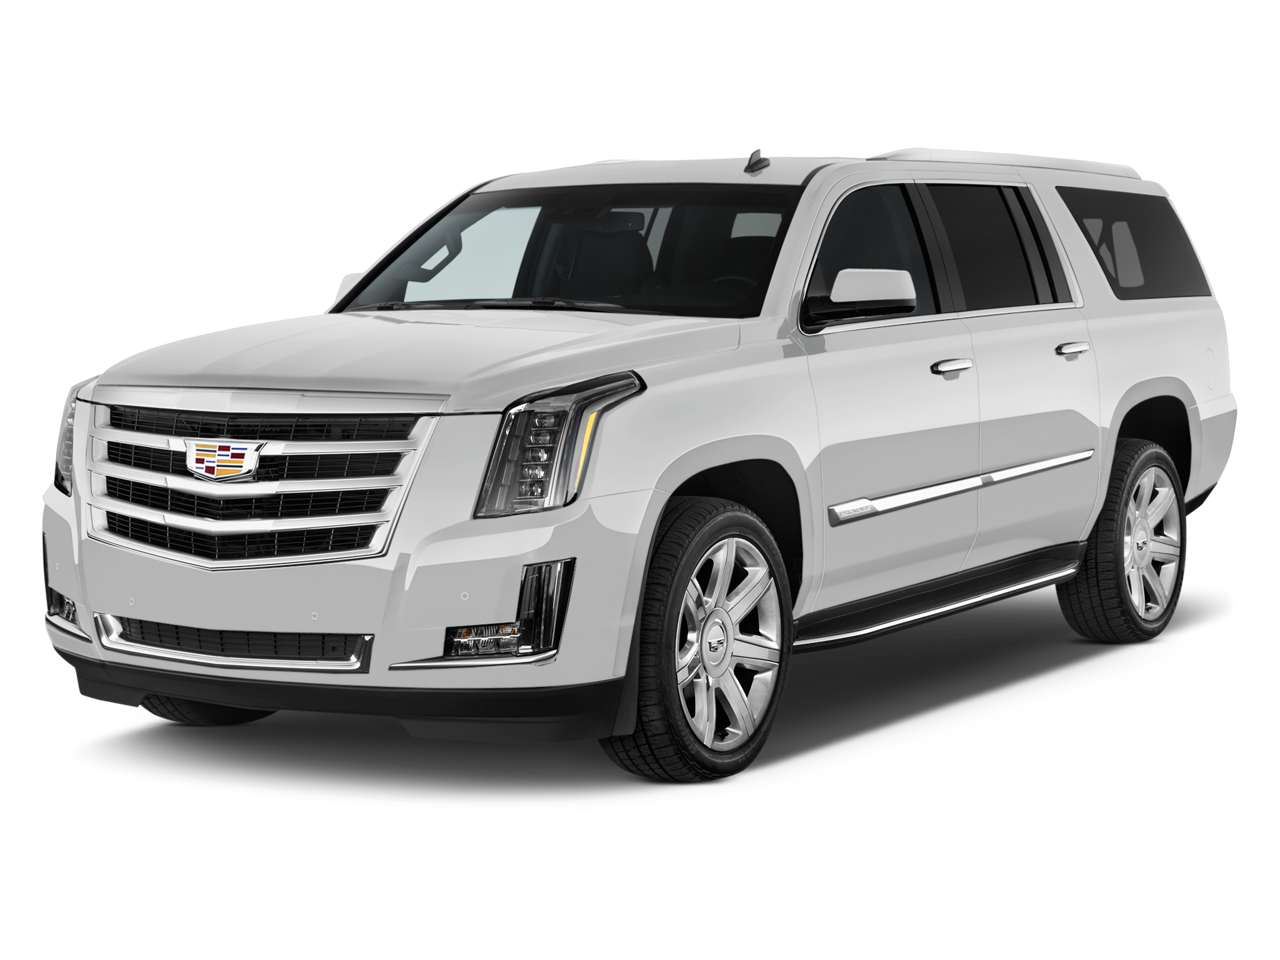 New 2019 Cadillac Escalade ESV Platinum.